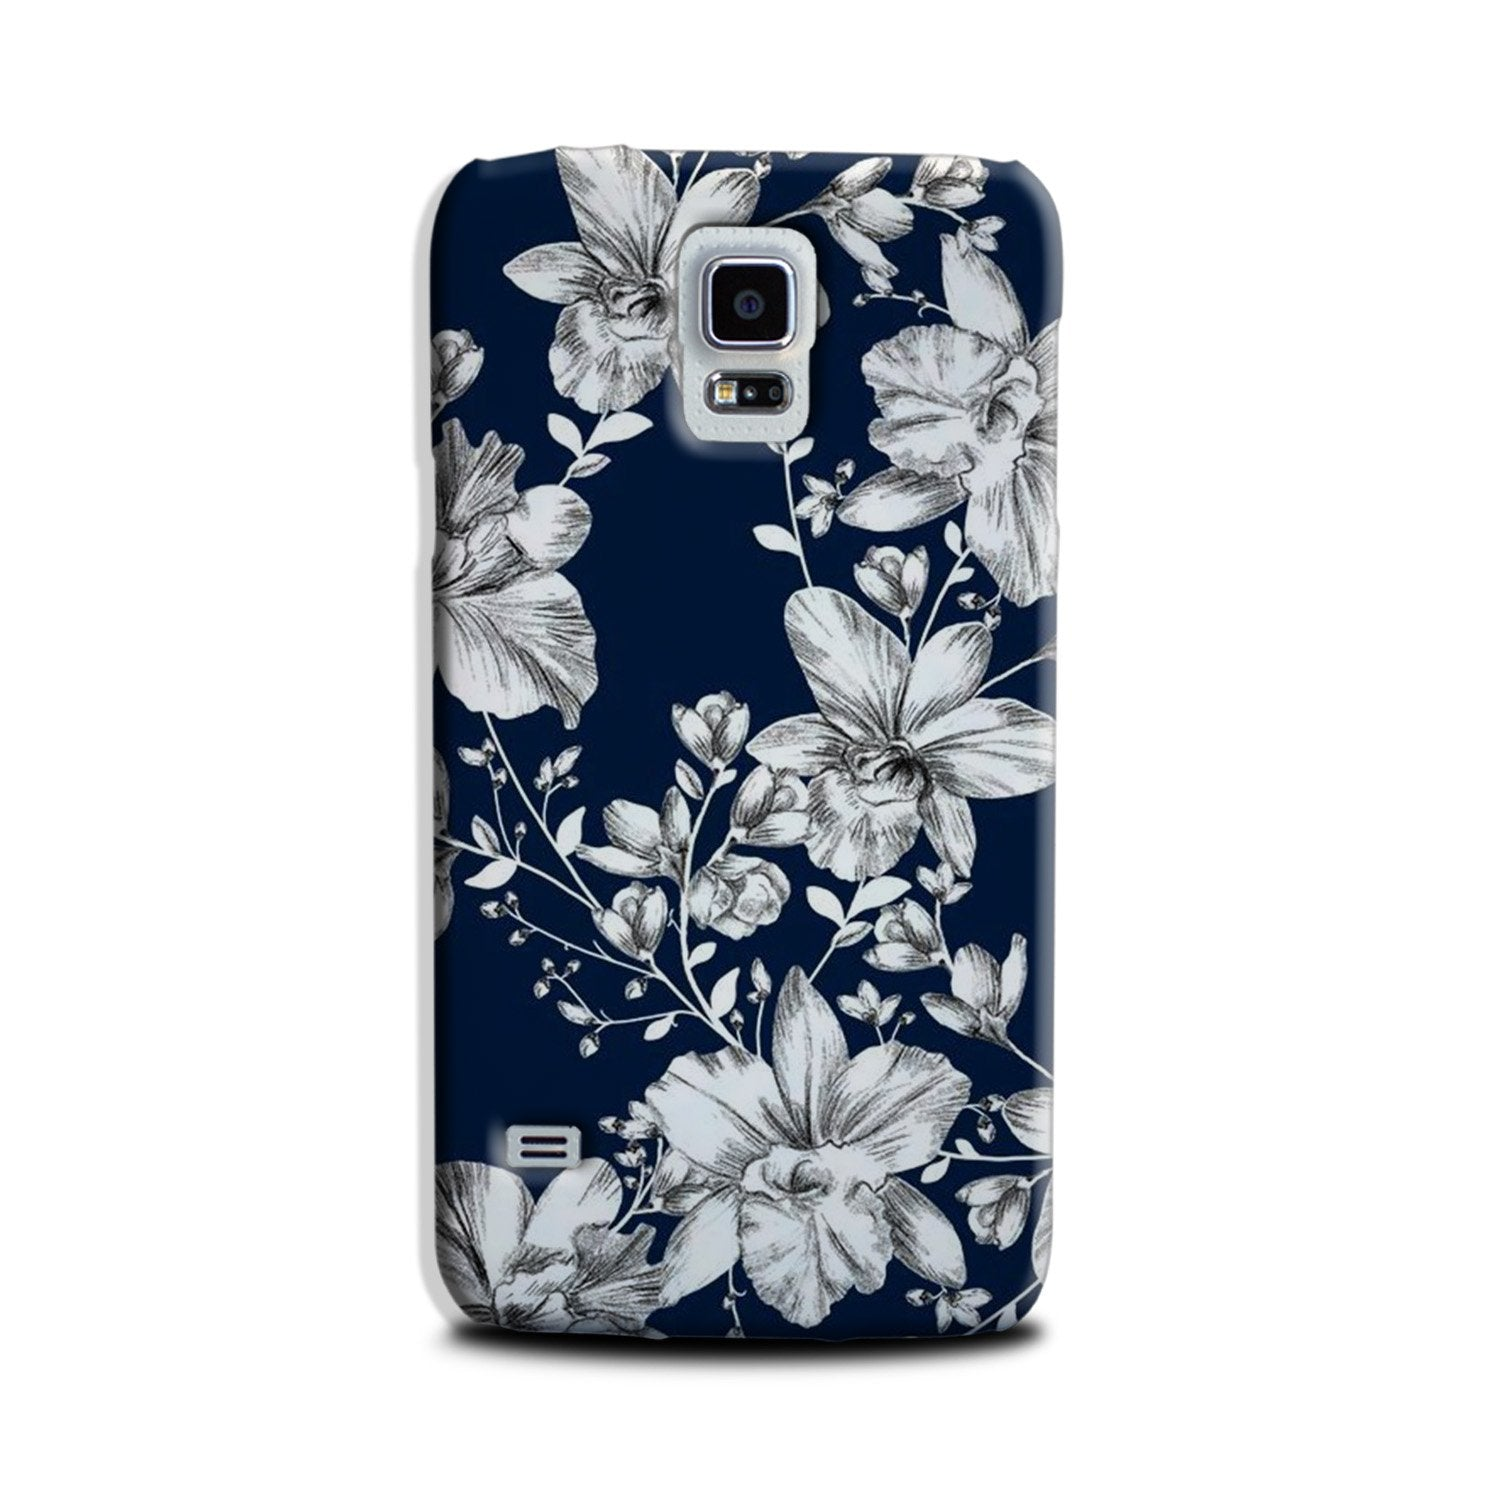 White flowers Blue Background Case for Galaxy S5